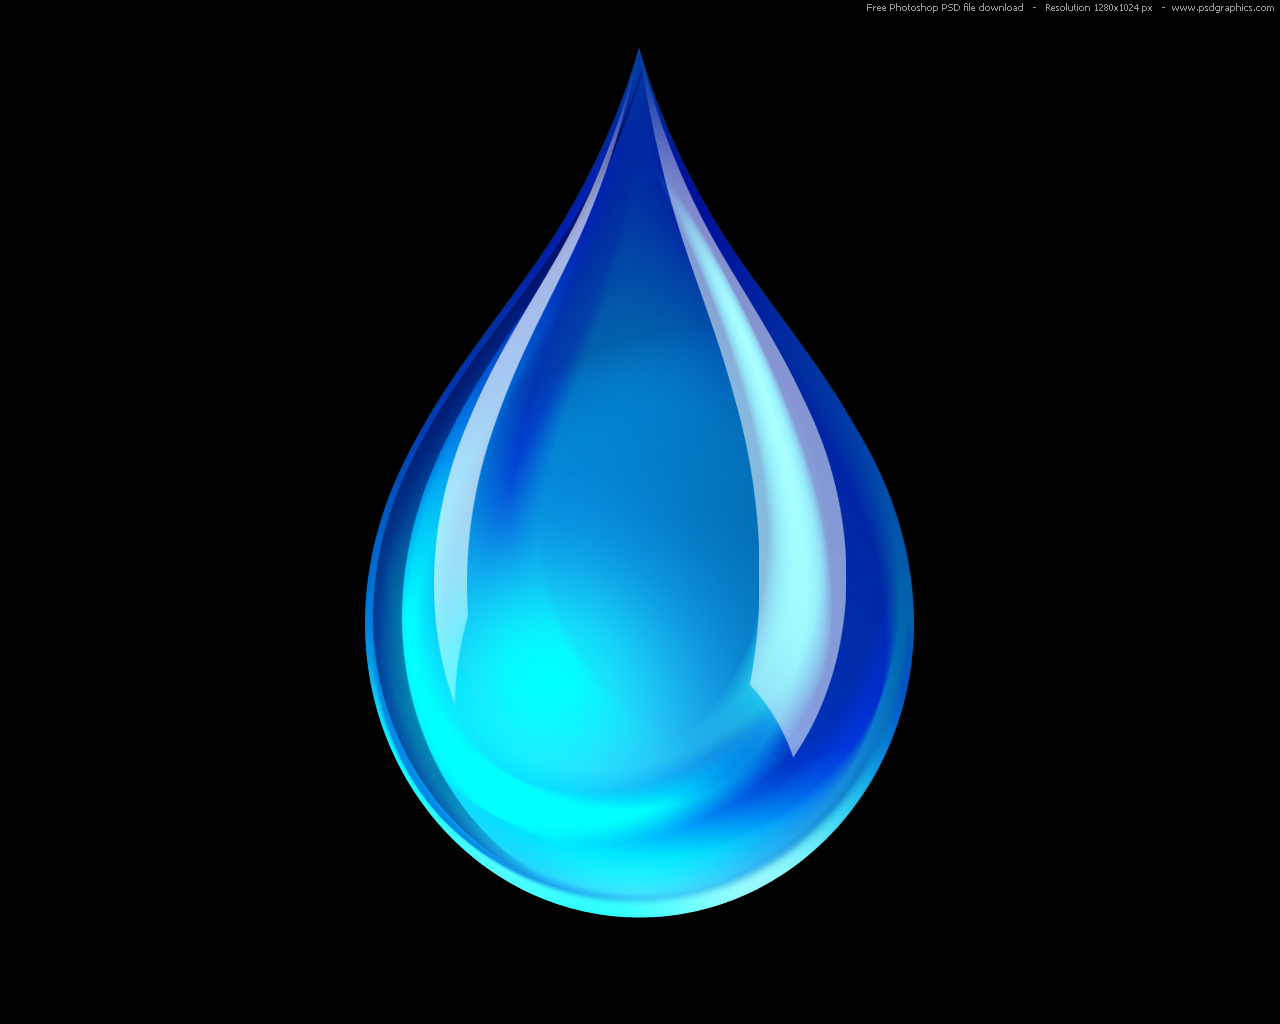 19 water droplet icon no background images droplet water water droplet clipart black and white water droplet image clipart